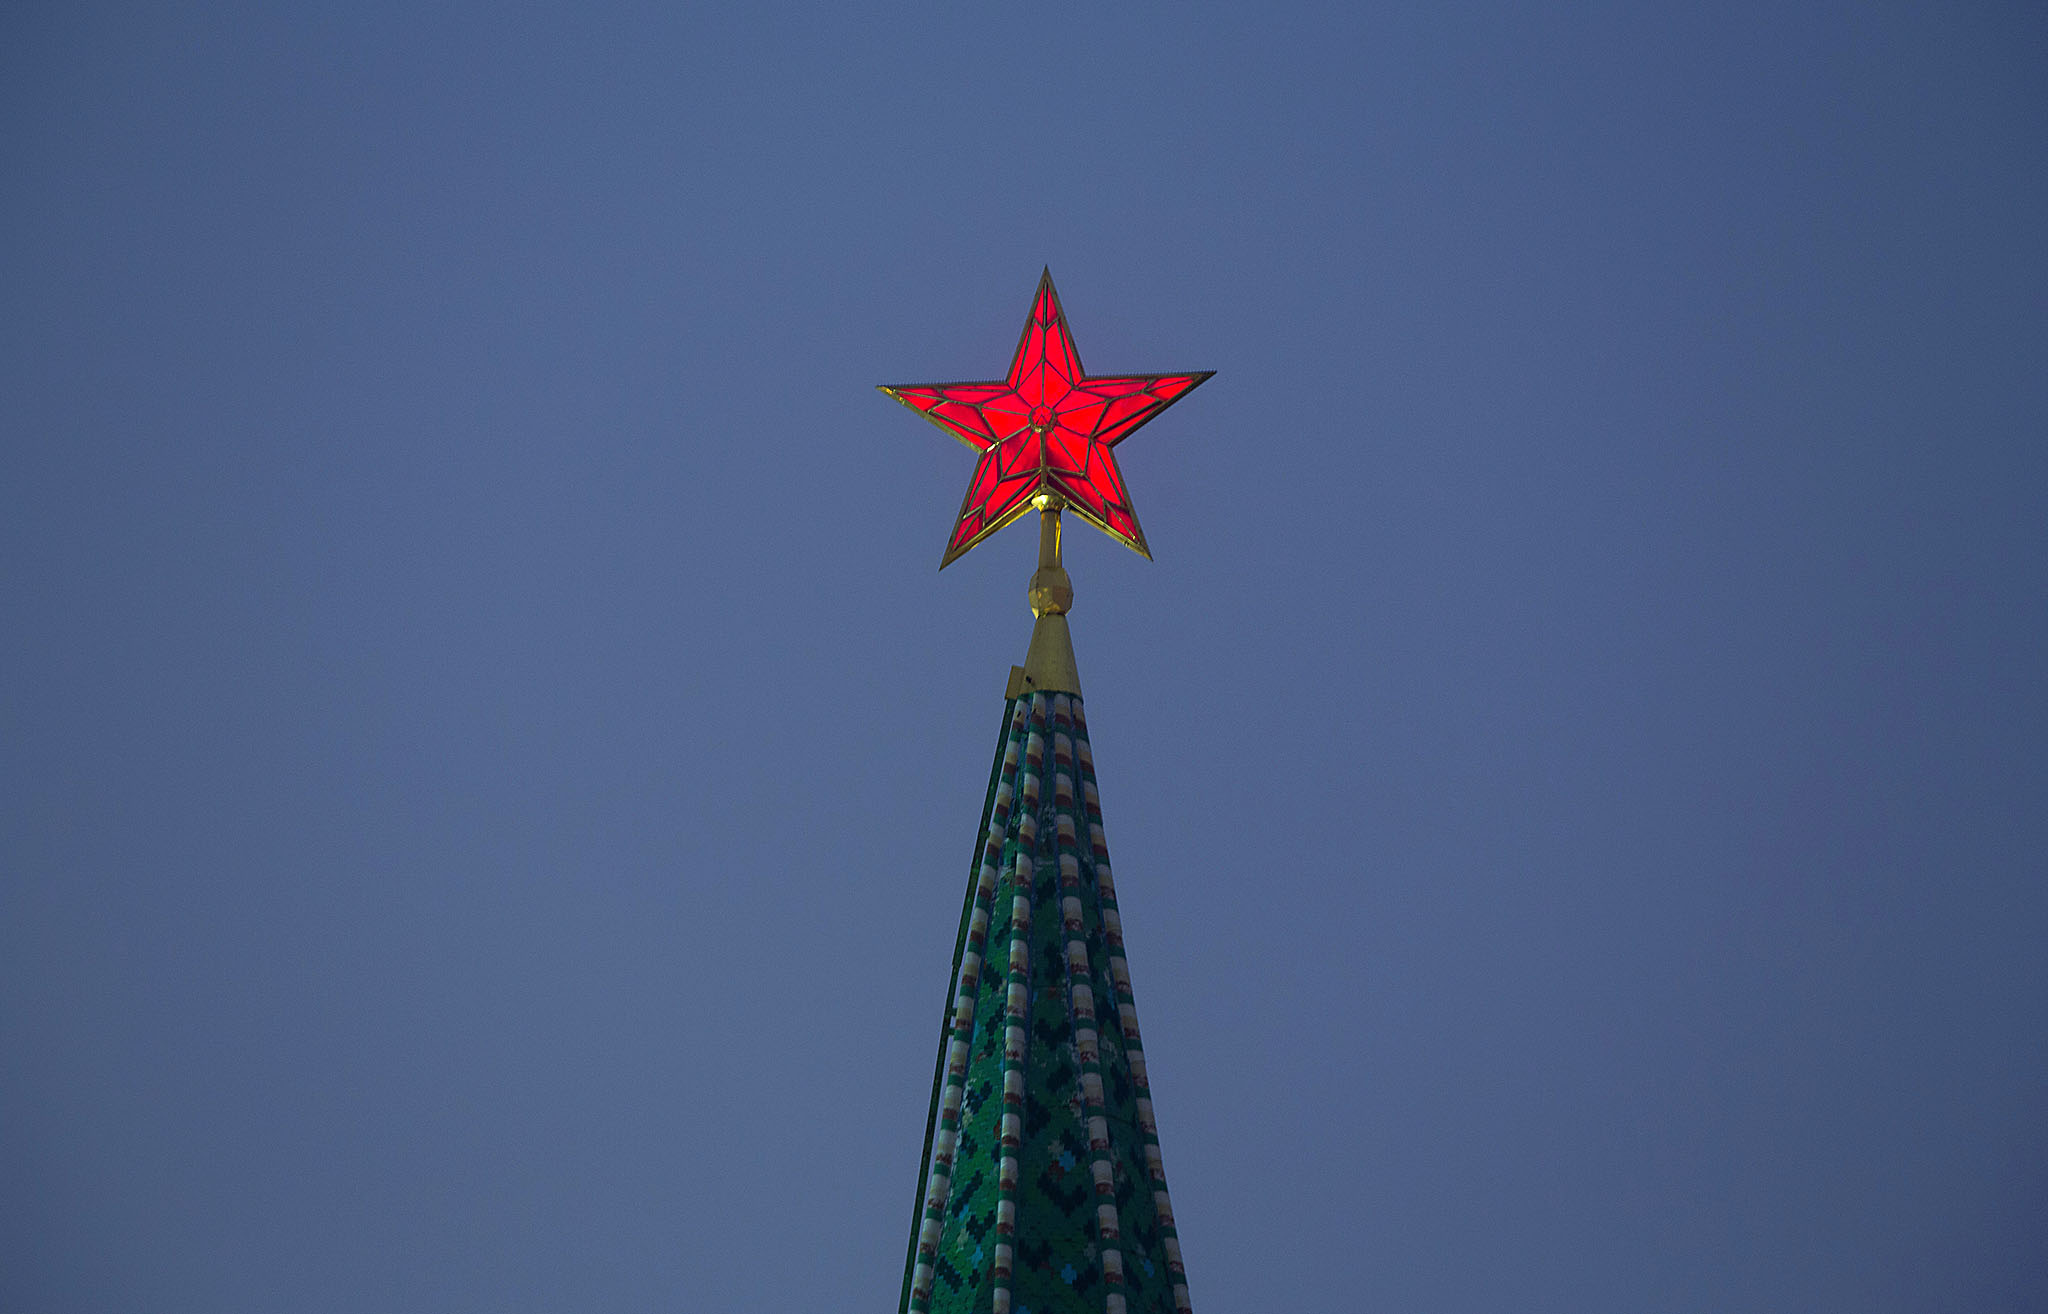 A red star sits illuminated above a fortified tower at the Kremlin palace complex in Moscow, Russia, on Thursday, Nov. 10, 2016. Russia is realistic about limits on the prospects for an immediate improvement in relations with the U.S. after President-elect Donald Trump takes office, according to President Vladimir Putin's spokesman. Photographer: Andrey Rudakov/Bloomberg